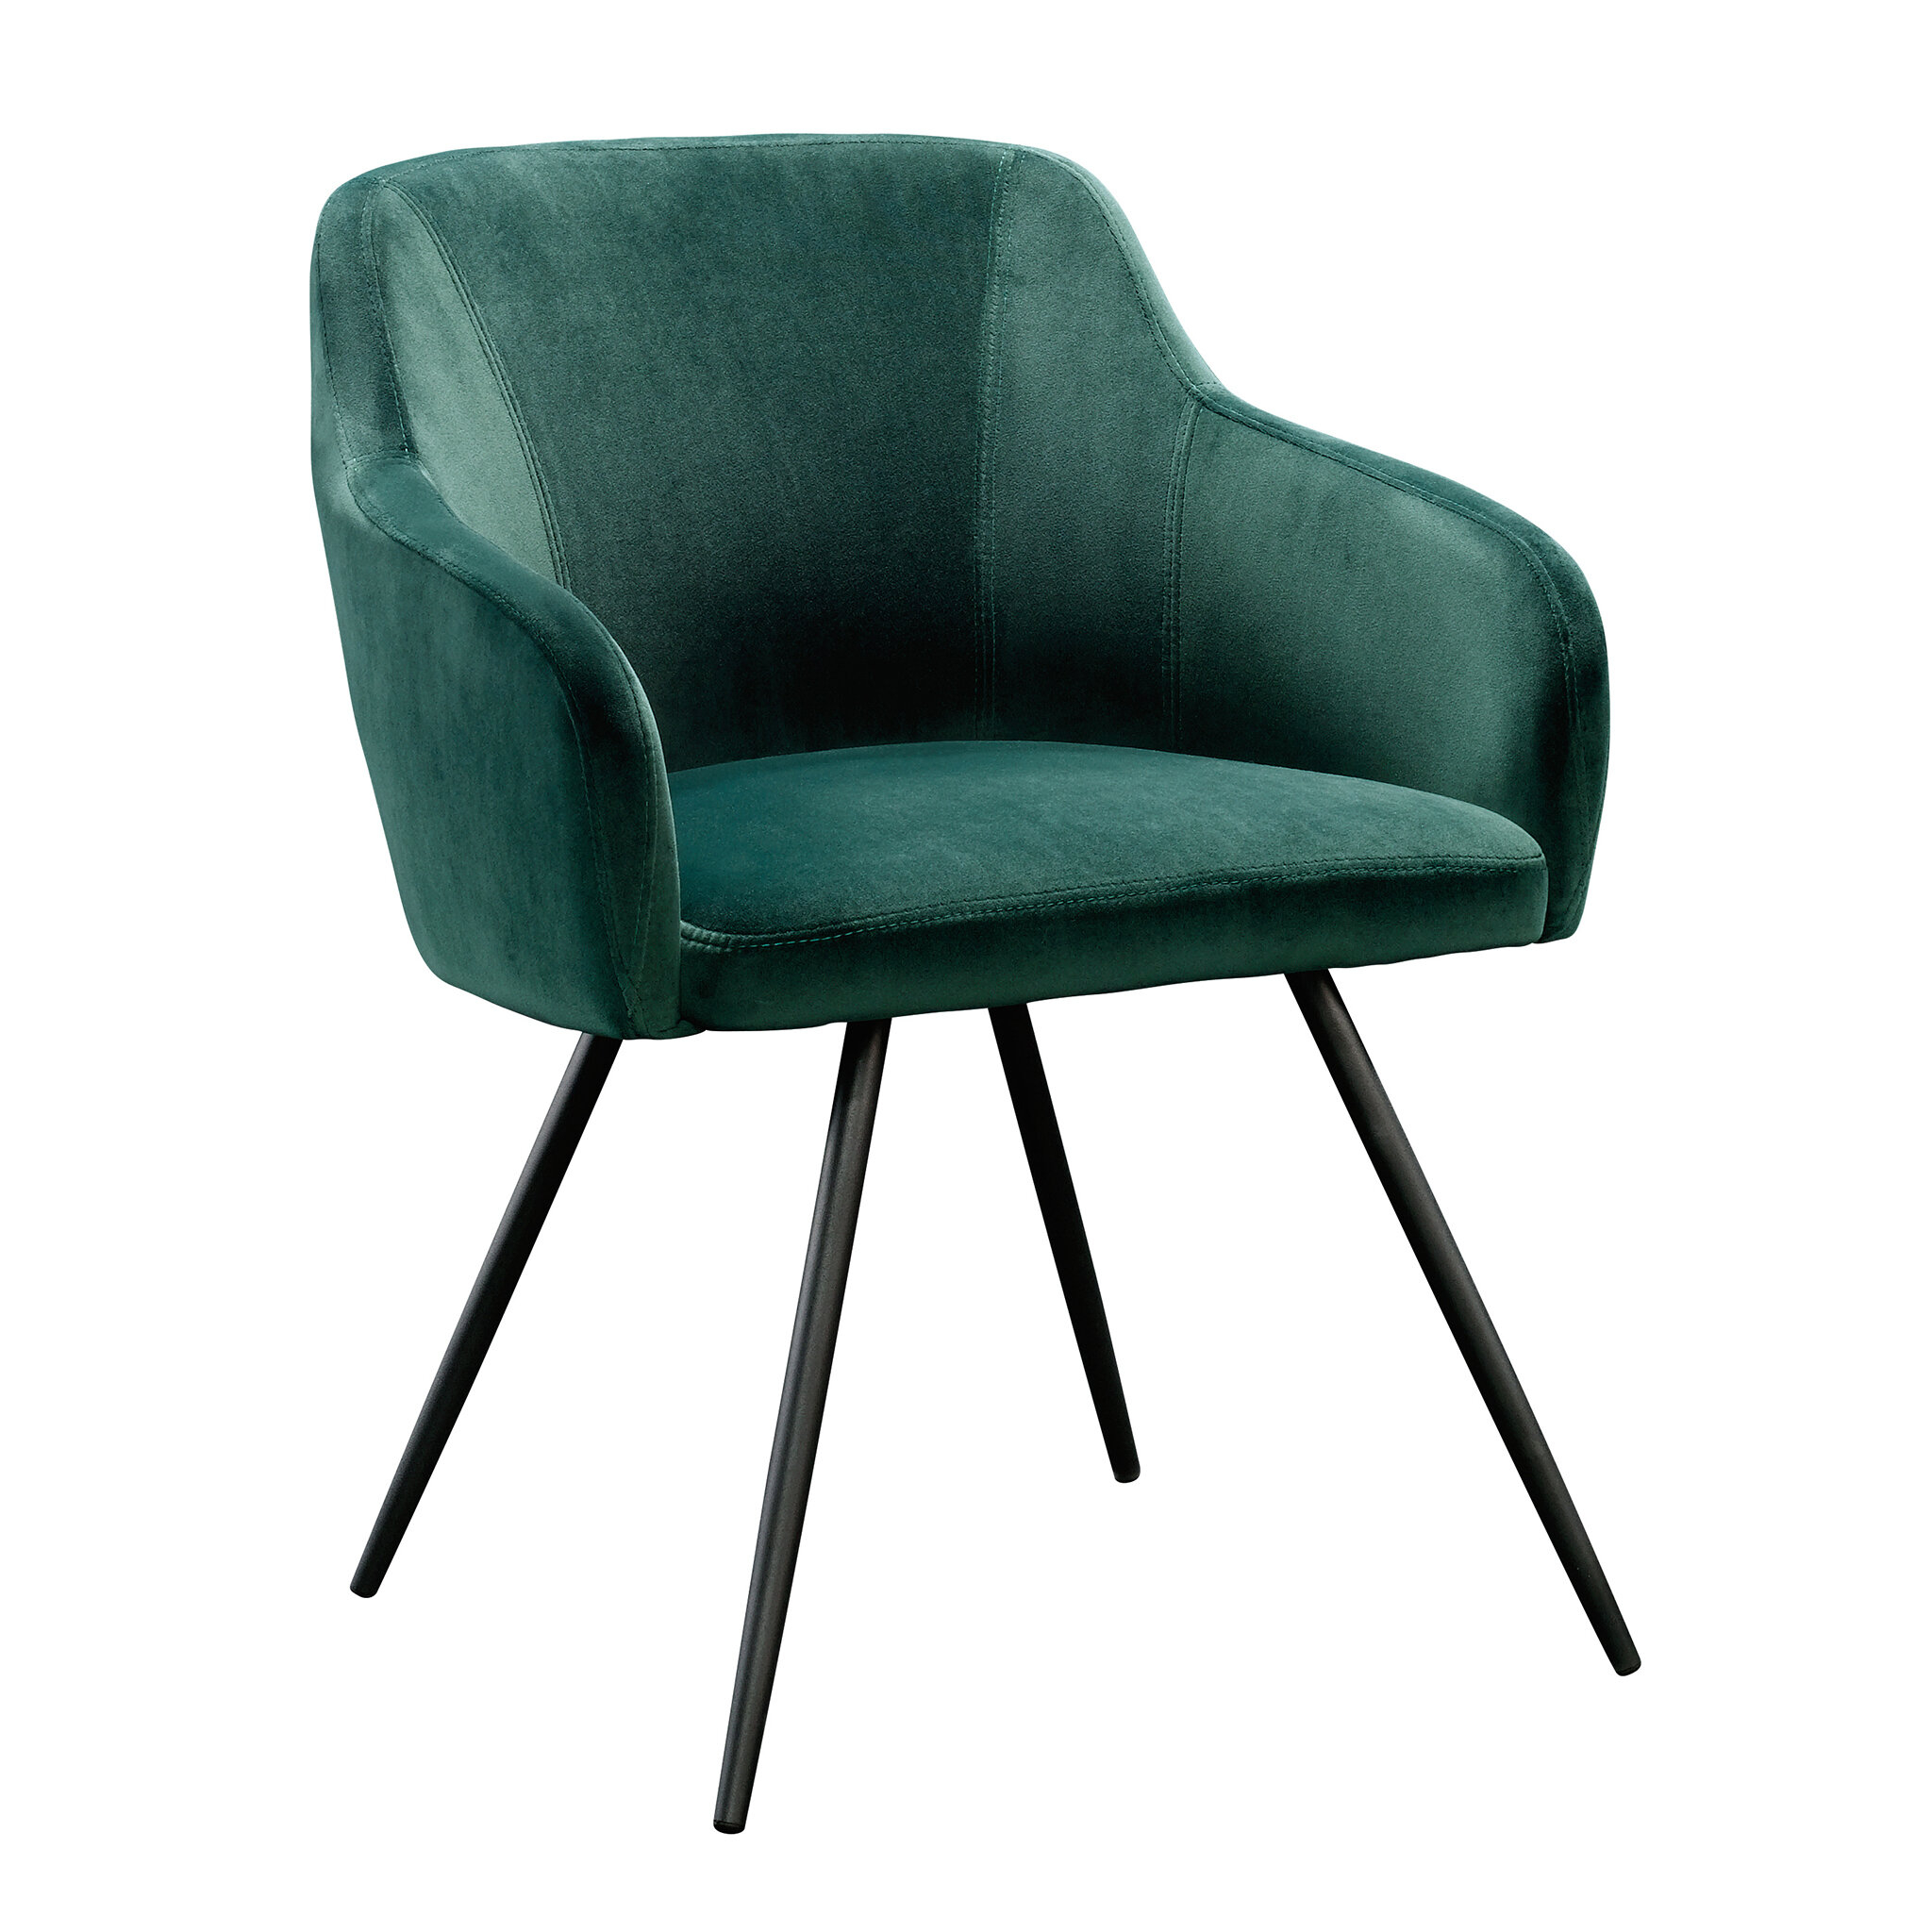 Hanner Armchair With Regard To Hanner Polyester Armchairs (View 2 of 15)